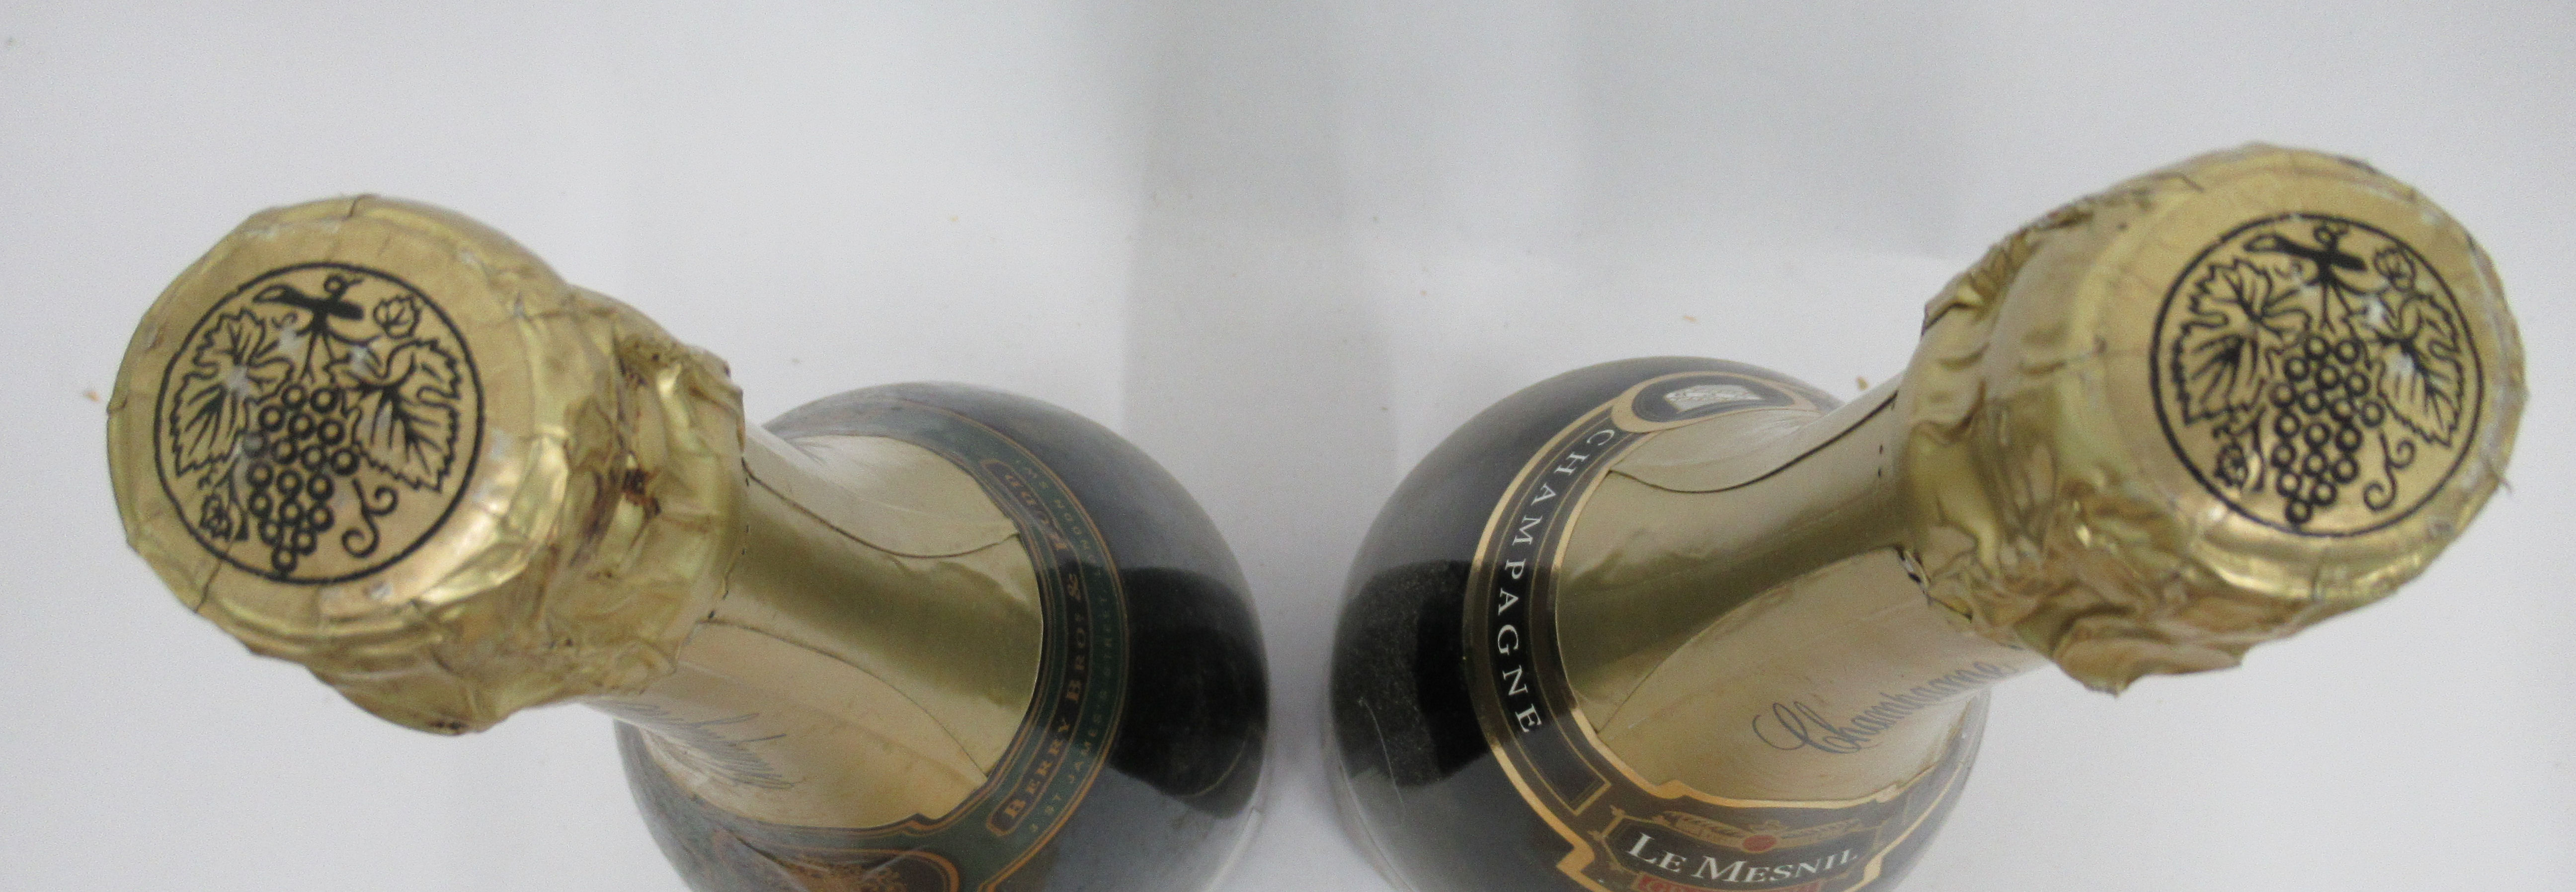 Wine, two Magnums of Champagne, viz. a Berry Bothers & Rudd; and a Le Mesnil Grand Cru - Image 4 of 4